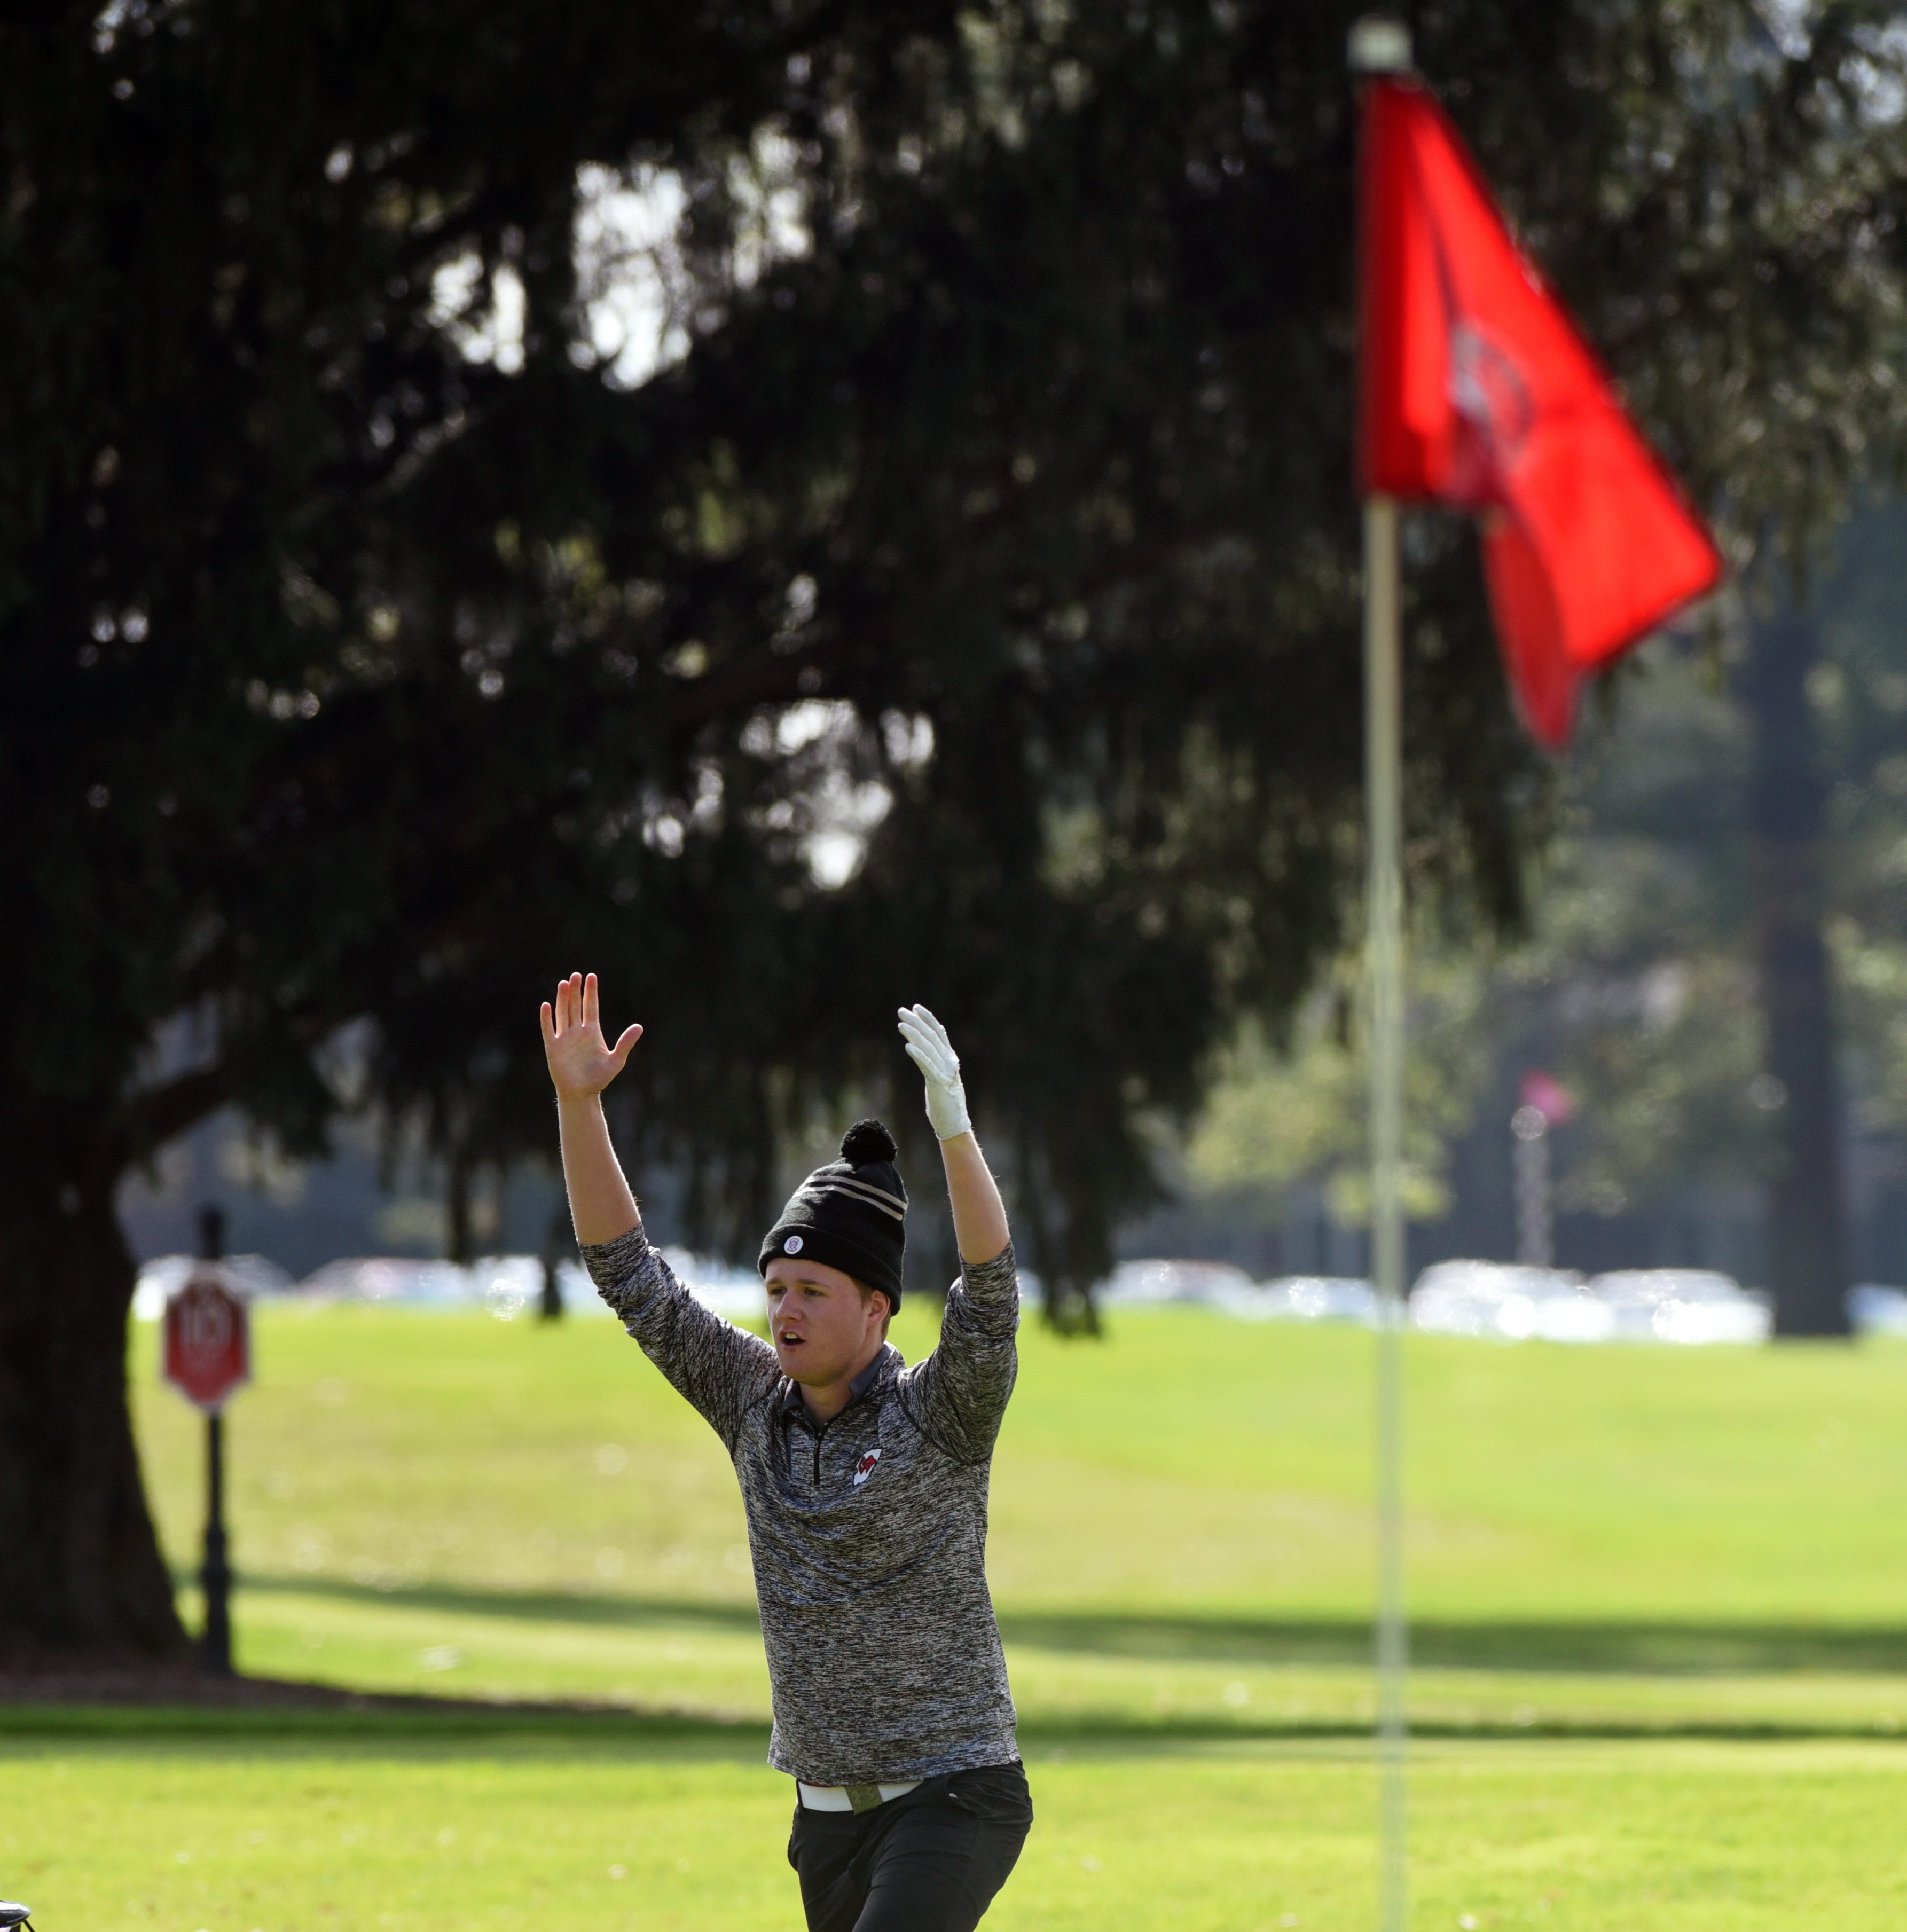 State golf: Coshocton left lasting legacy